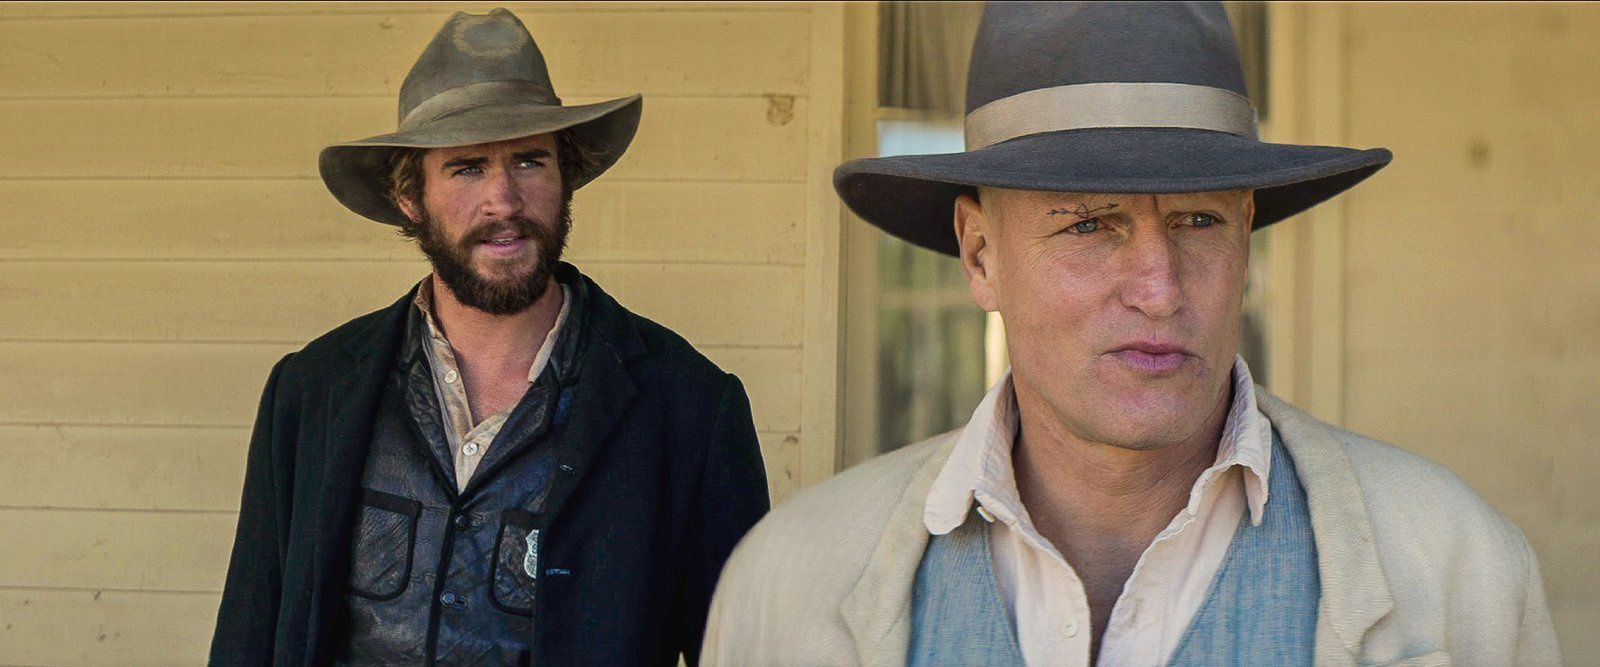 The Duel (BANDE ANNONCE VO 2016) avec Liam Hemsworth, Woody Harrelson